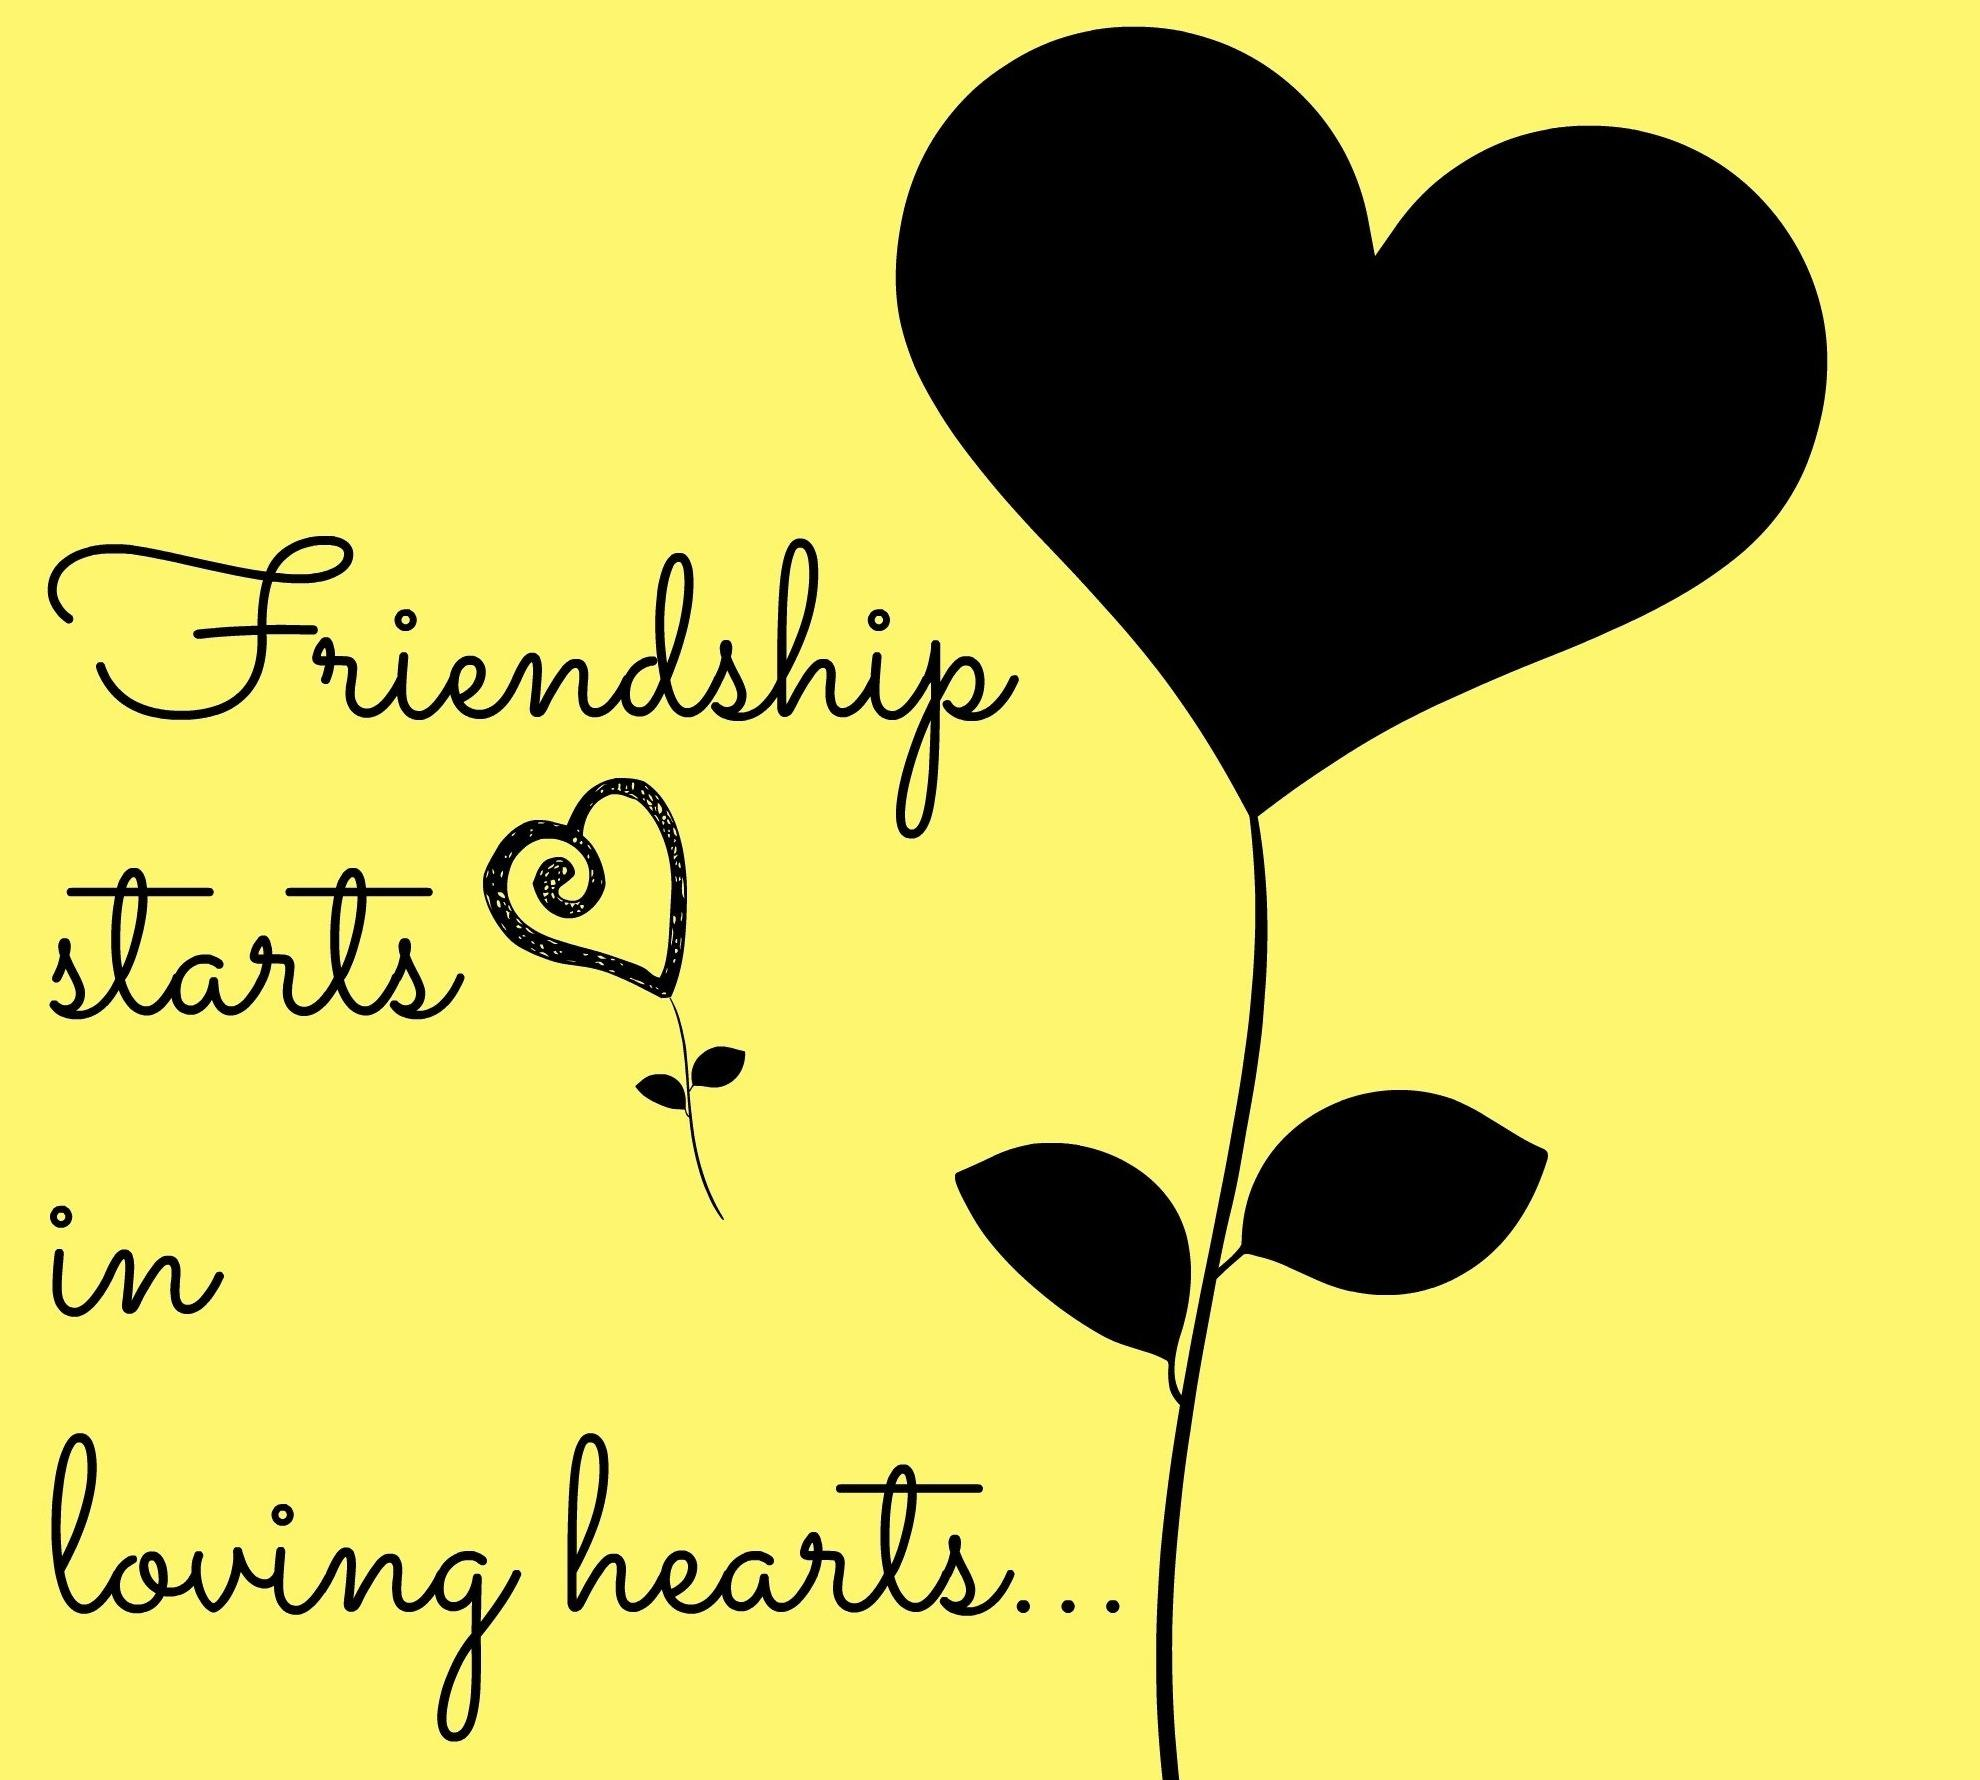 Images With Quotes On Friendship: Friendship Starts In Loving Hearts